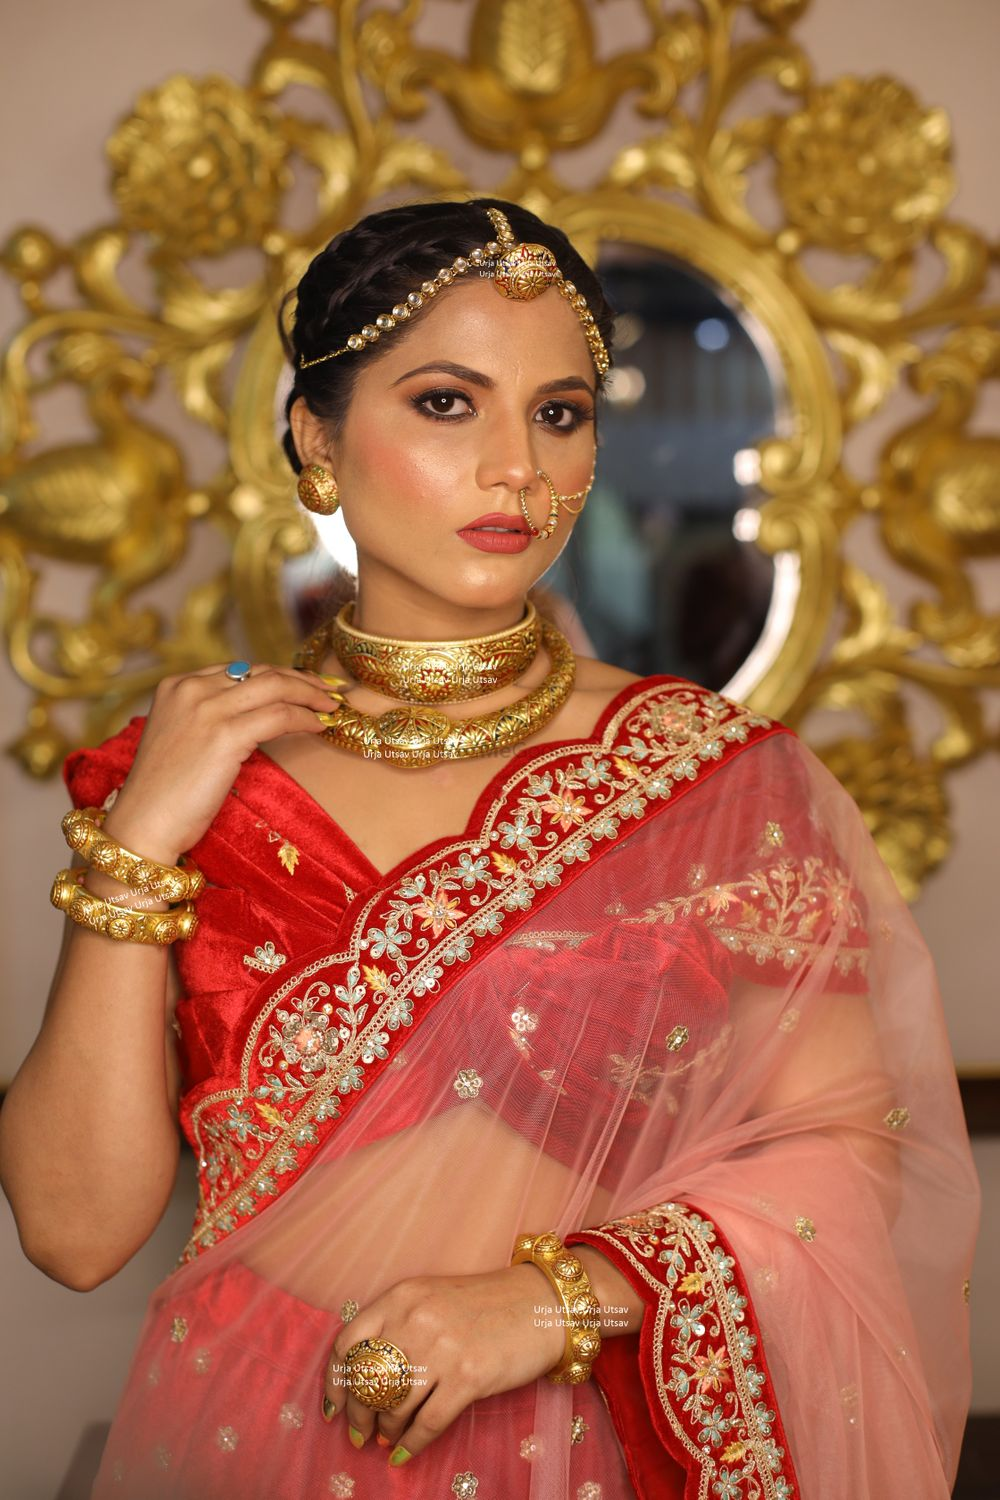 Photo From The Traditional Jewelry of a Rajasthani Bride - By Urja Utsav